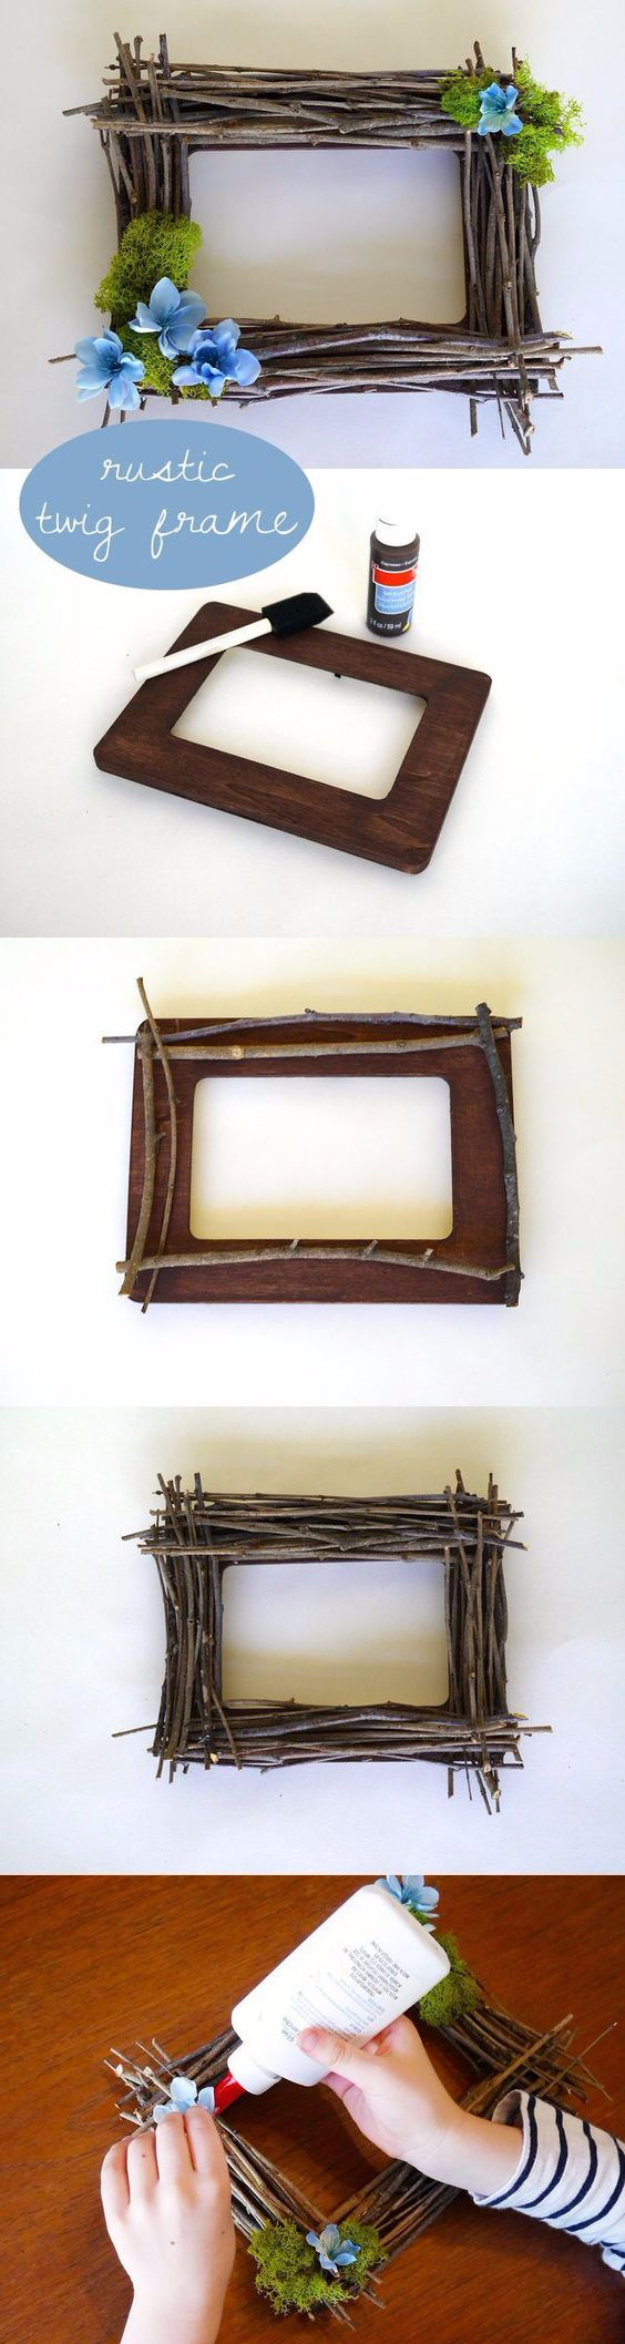 DIY Farmhouse Style Decor Ideas - DIY Rustic Twig Frame - Rustic Ideas for Furniture, Paint Colors, Farm House Decoration for Living Room, Kitchen and Bedroom #diy